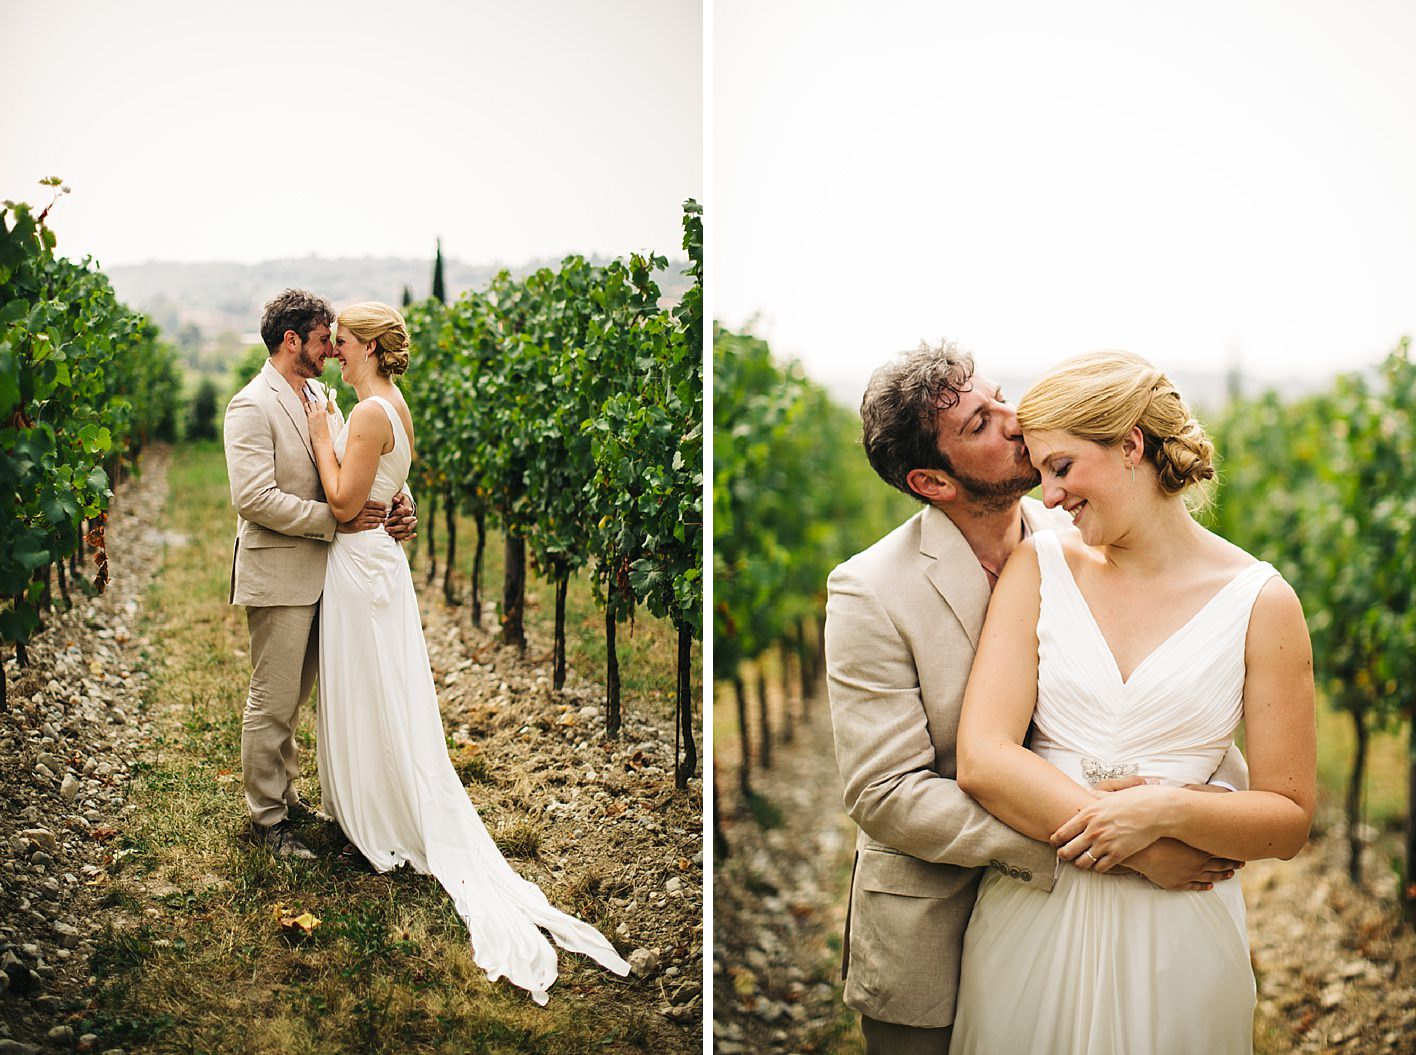 Vineyard wedding portraits near Milan